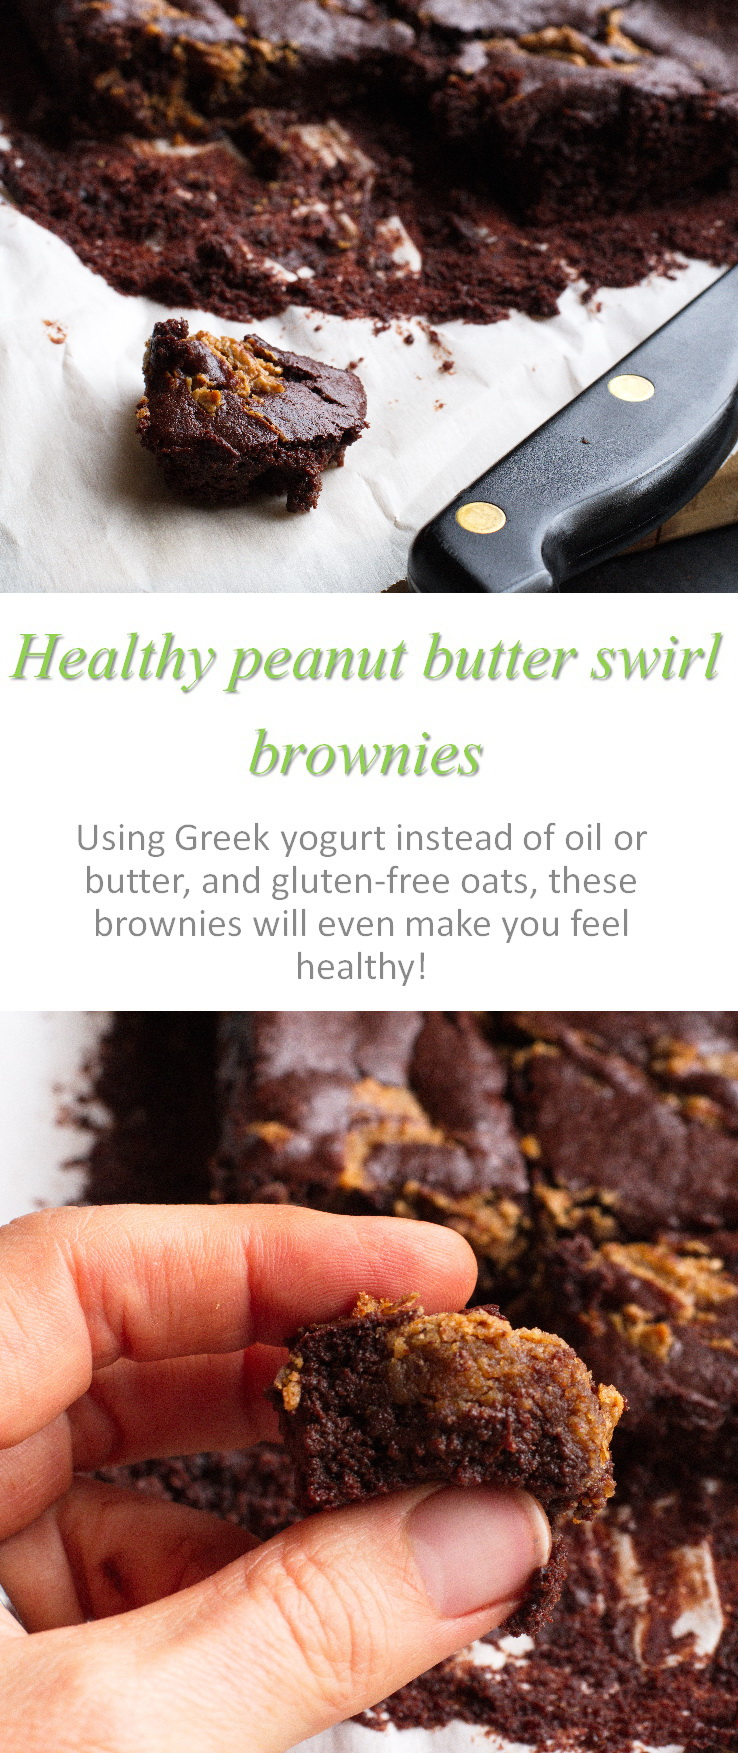 Brownies made with no oil? Check out these peanut butter swirl brownies and you can feel healthy while eating them! #brownies